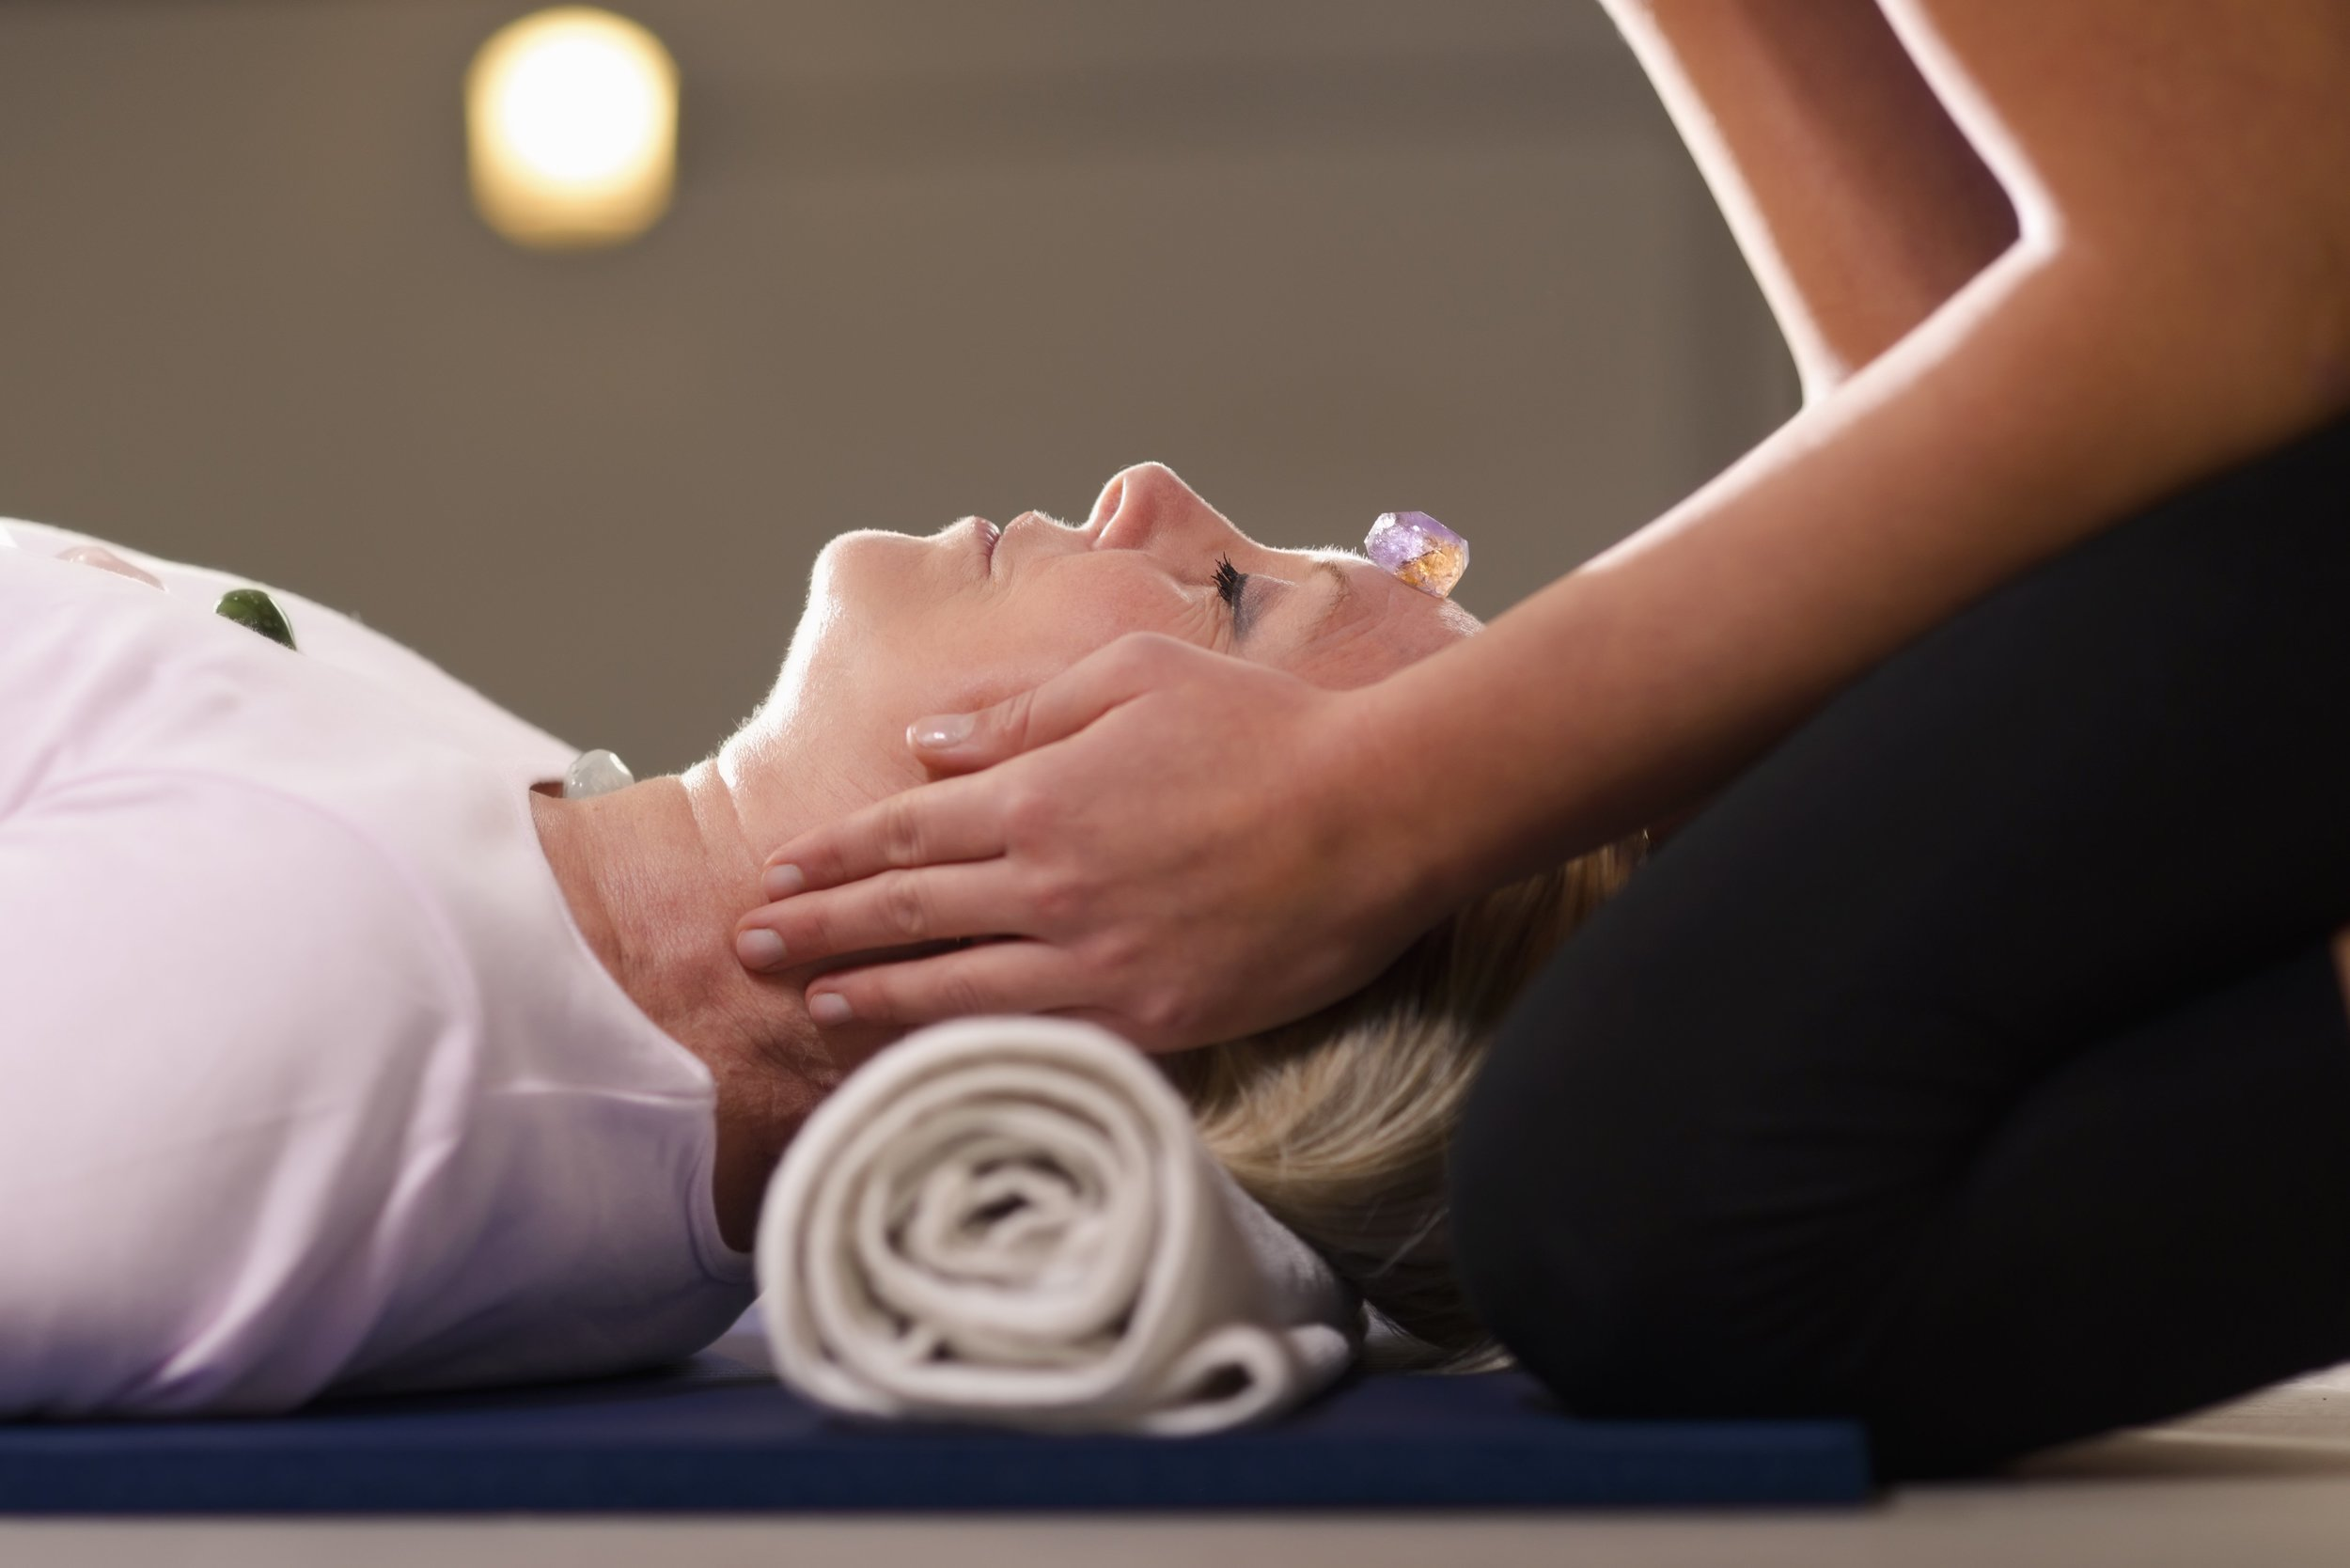 Crystal Massage - A biophotonic massage experience for your whole body using crystals and the Crystalline Web